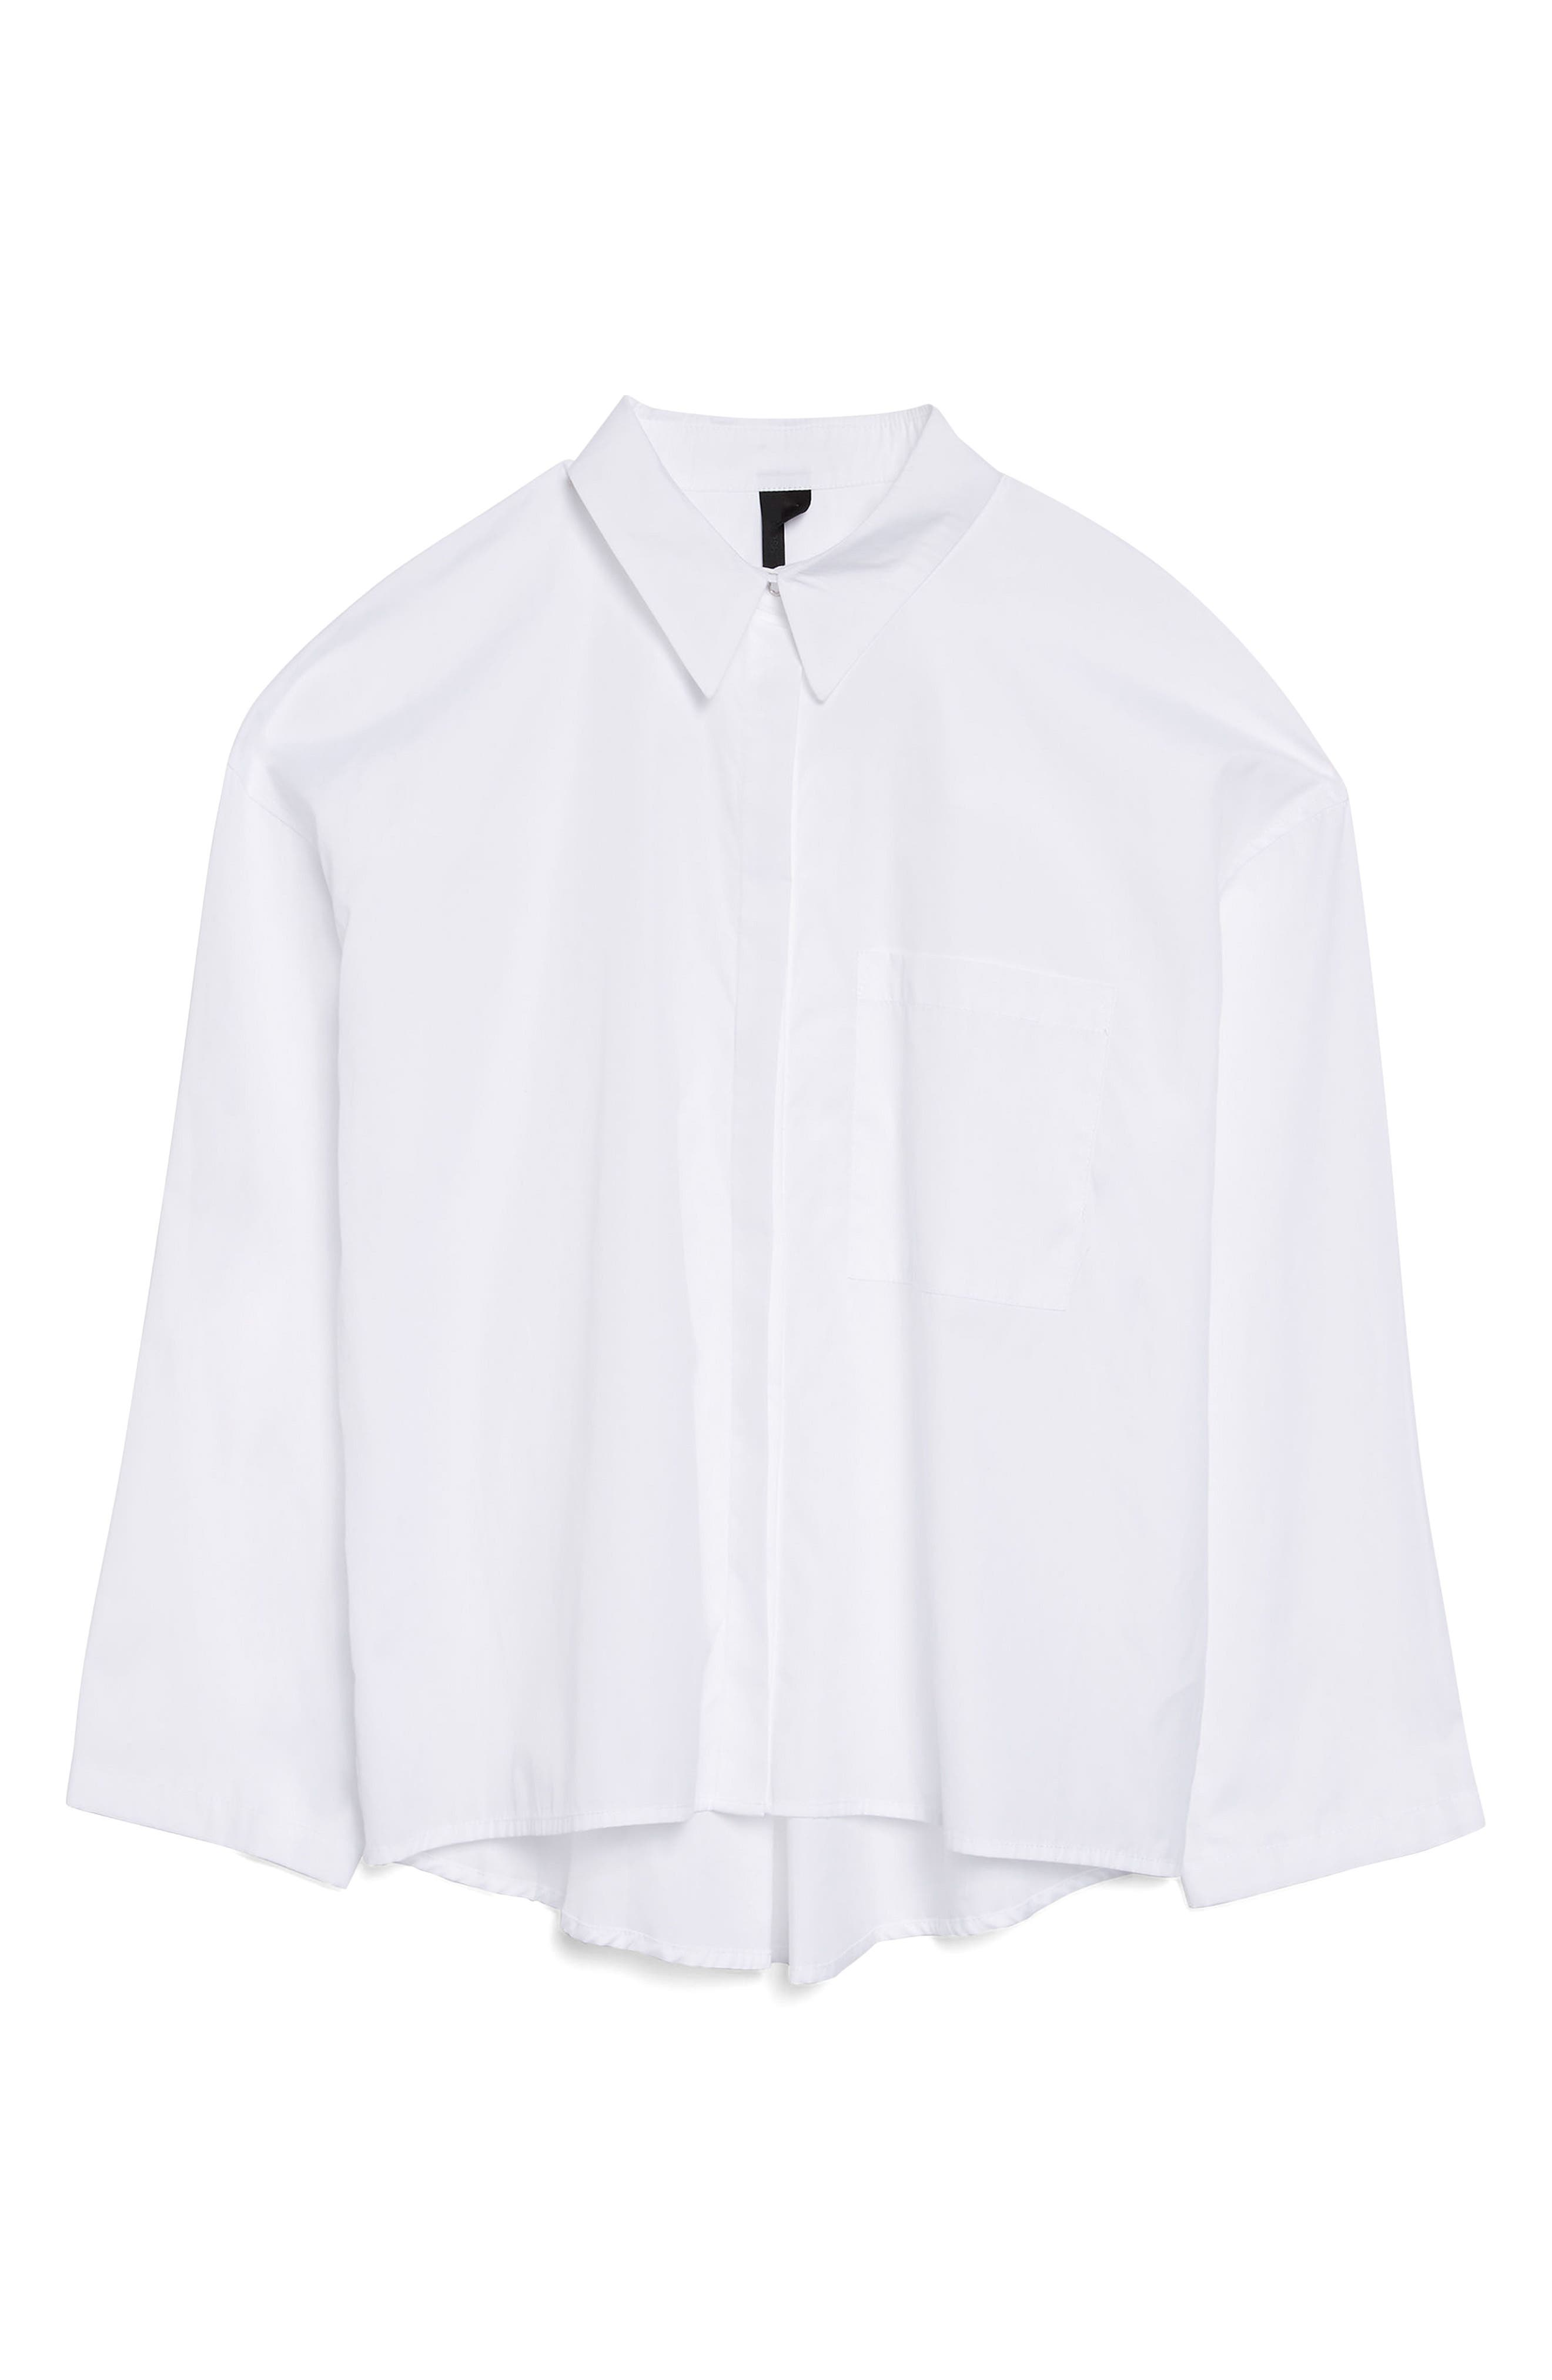 Topshop Boutique Popper Sleeve Boxy Shirt